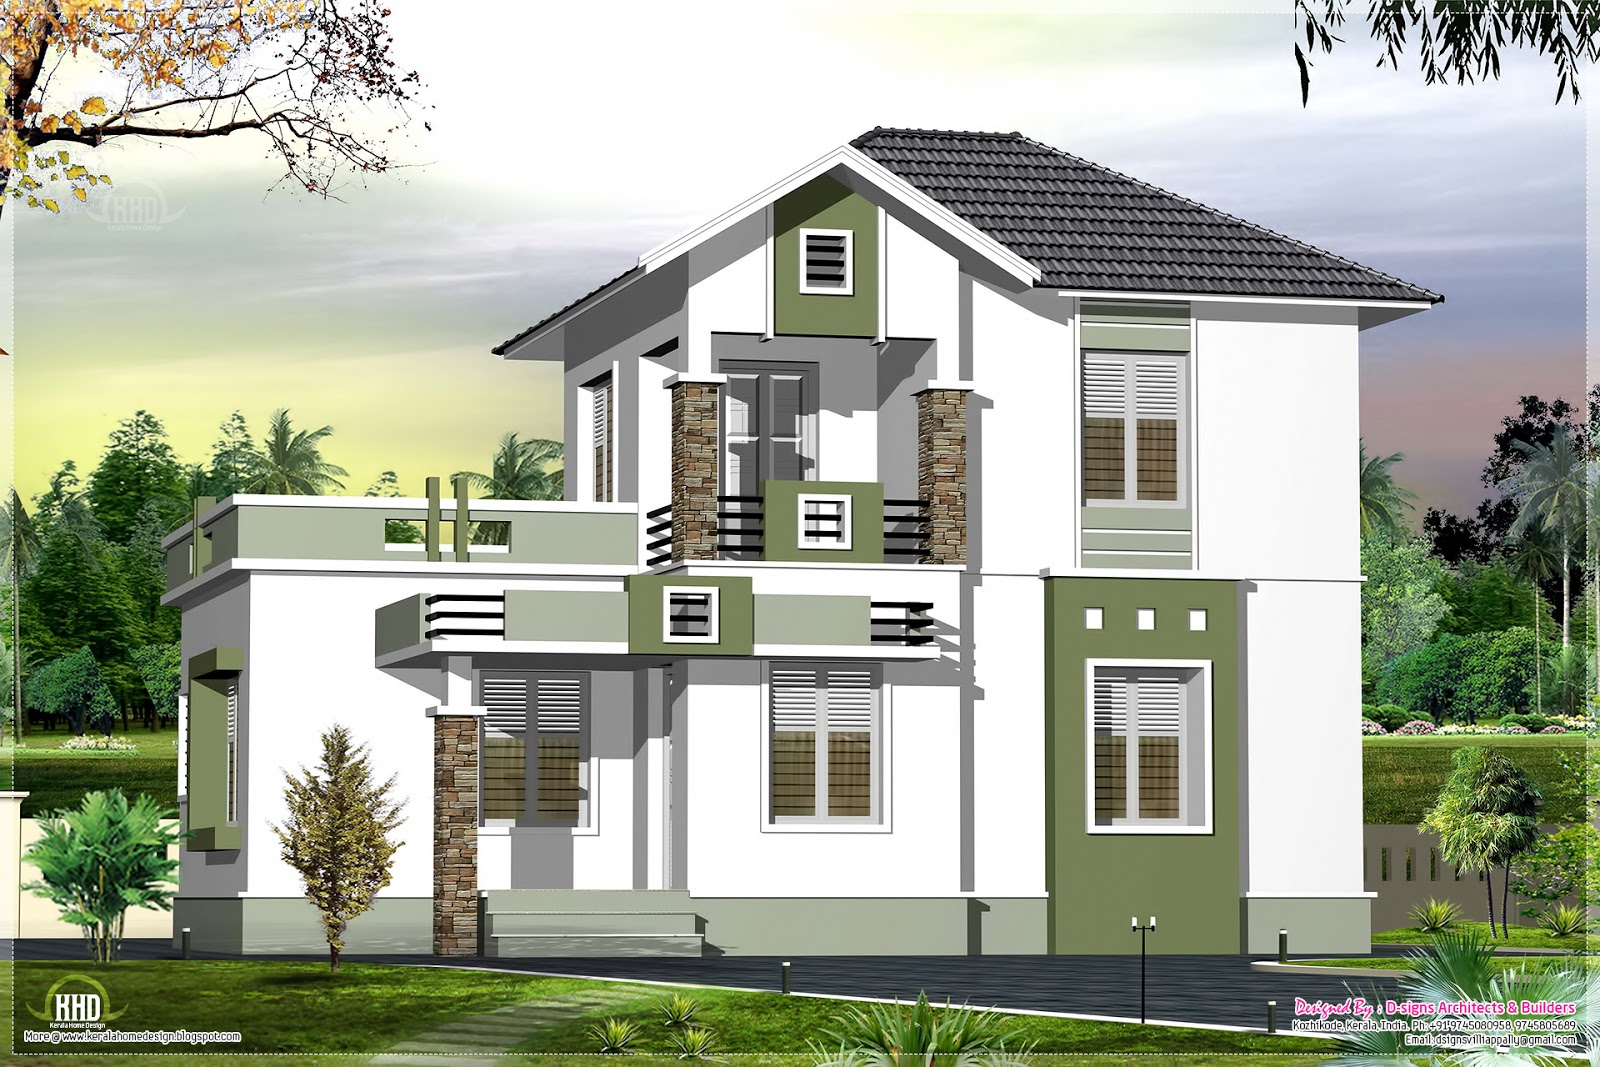 Small double floor home design in 1200 kerala for Small house design plans in india image